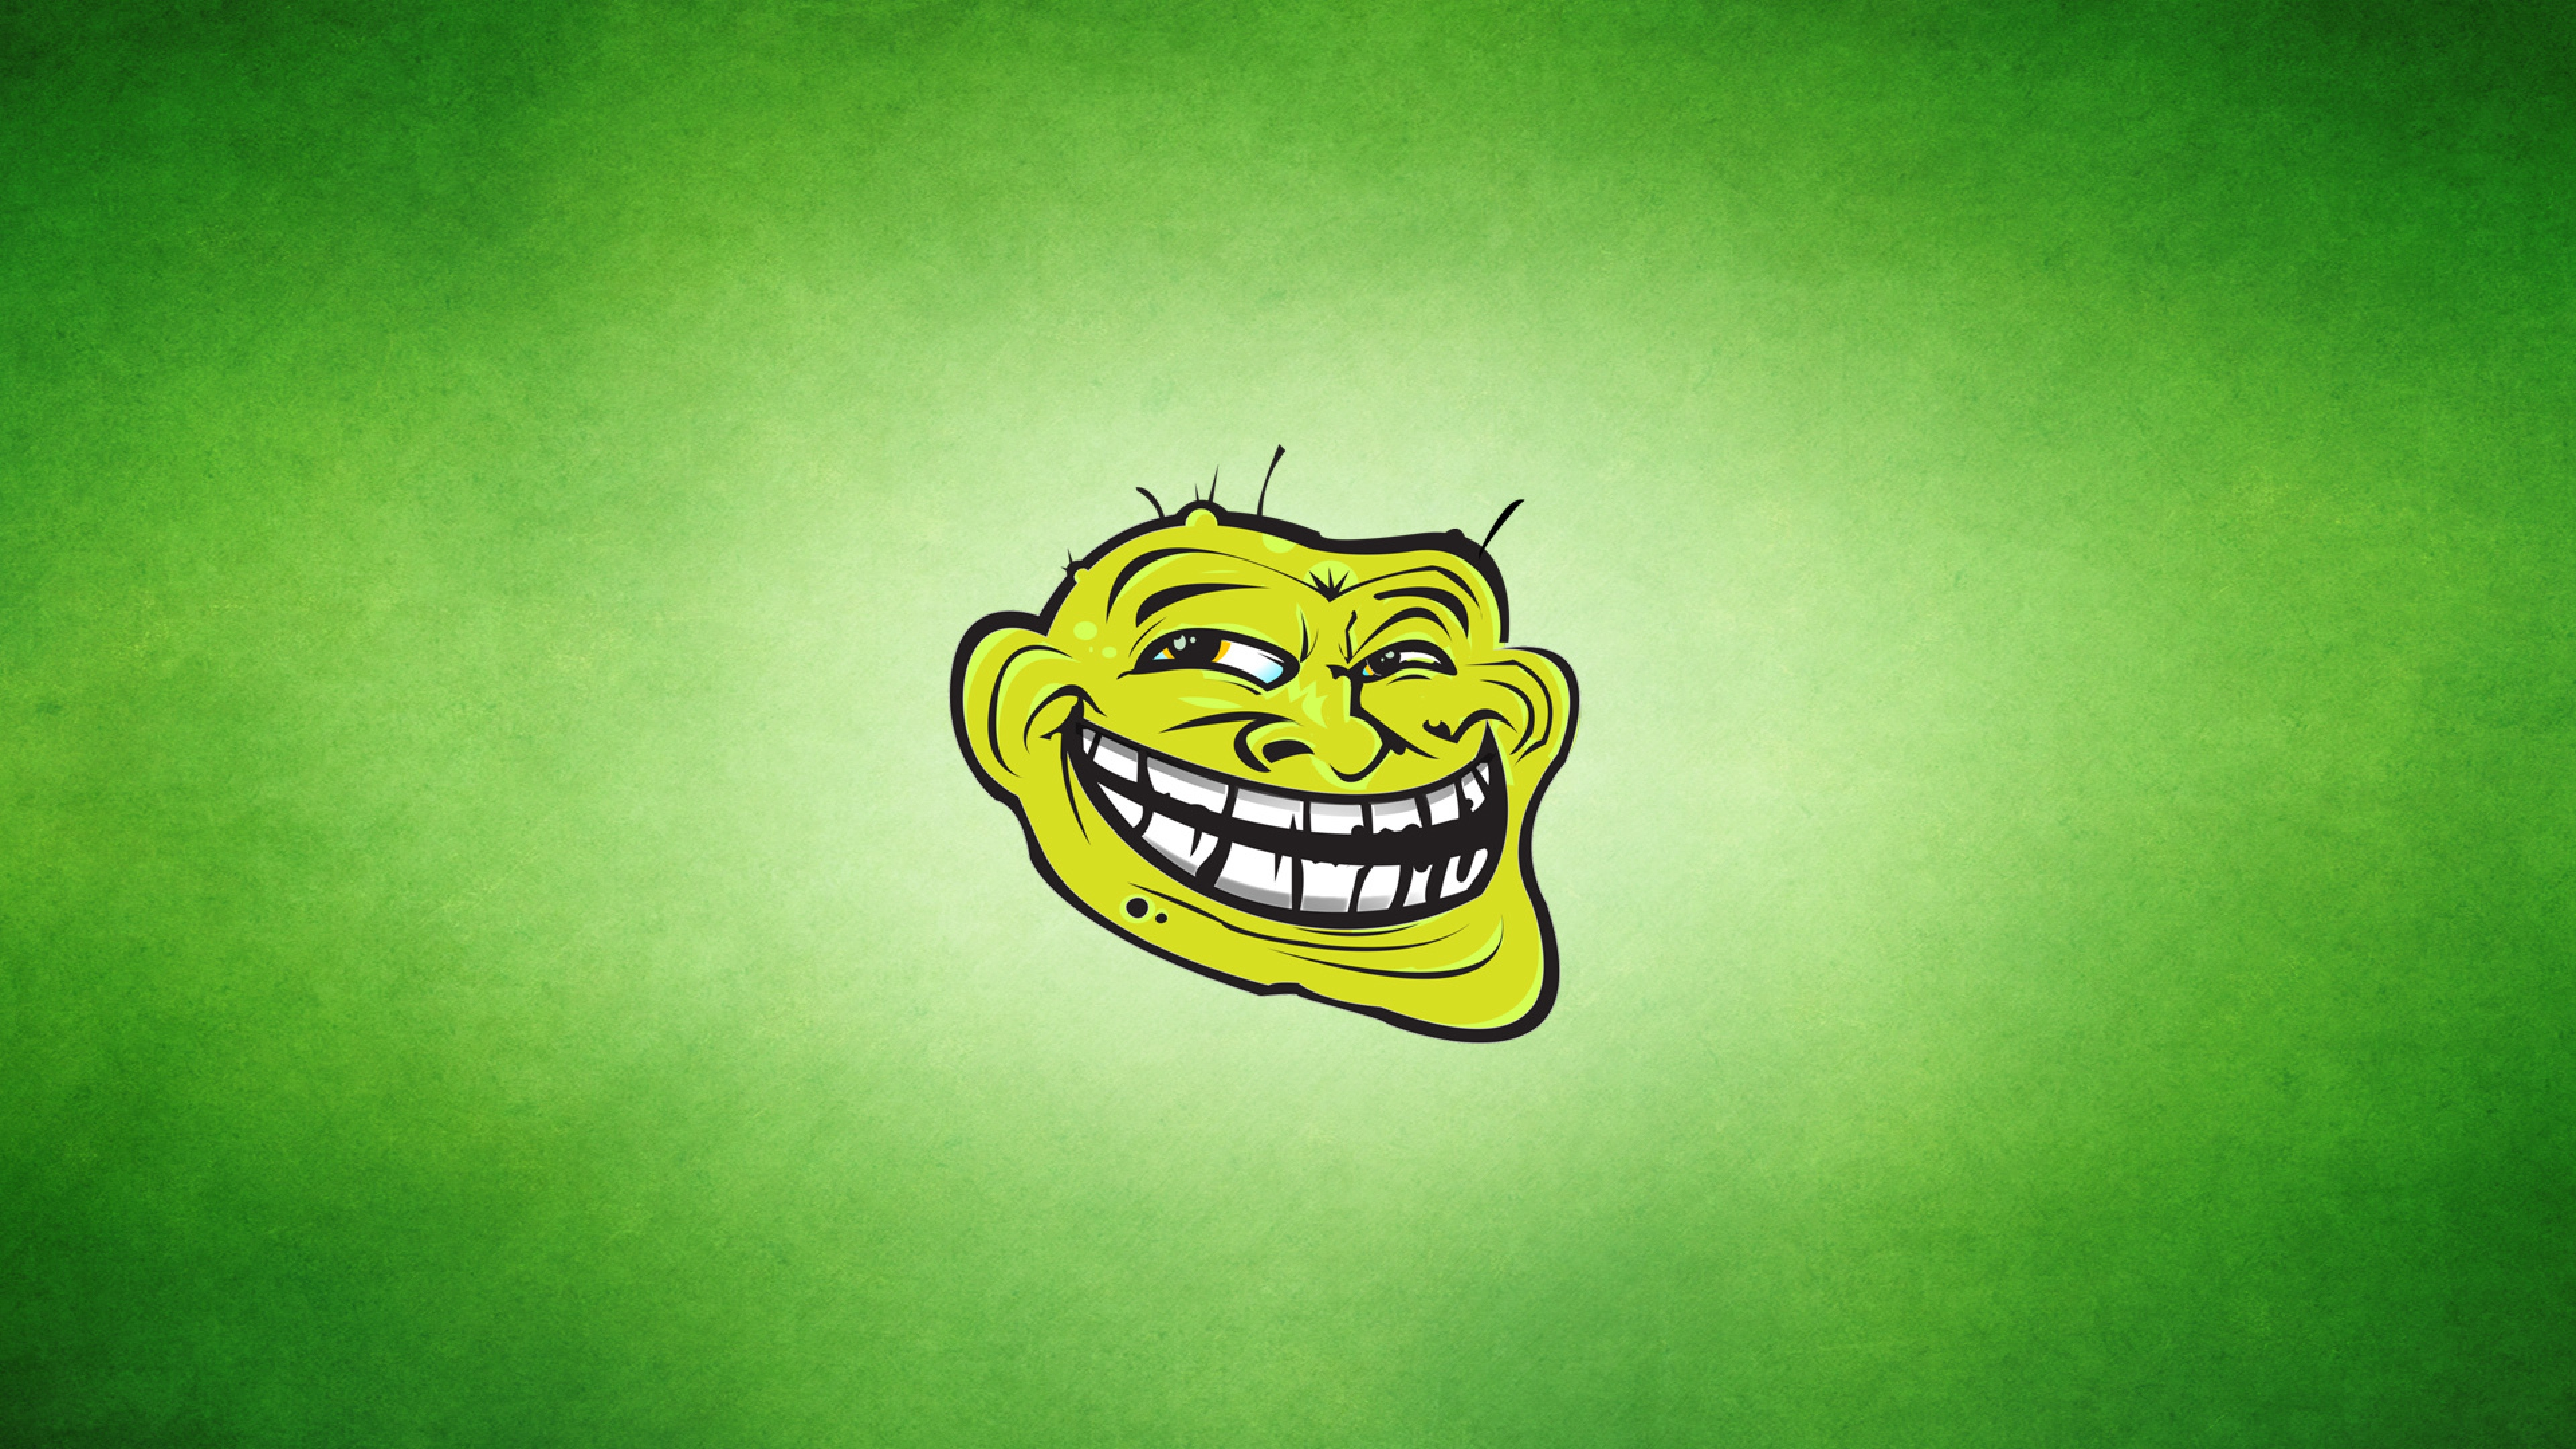 Trollface art hd funny 4k wallpapers images backgrounds photos trollface art voltagebd Gallery